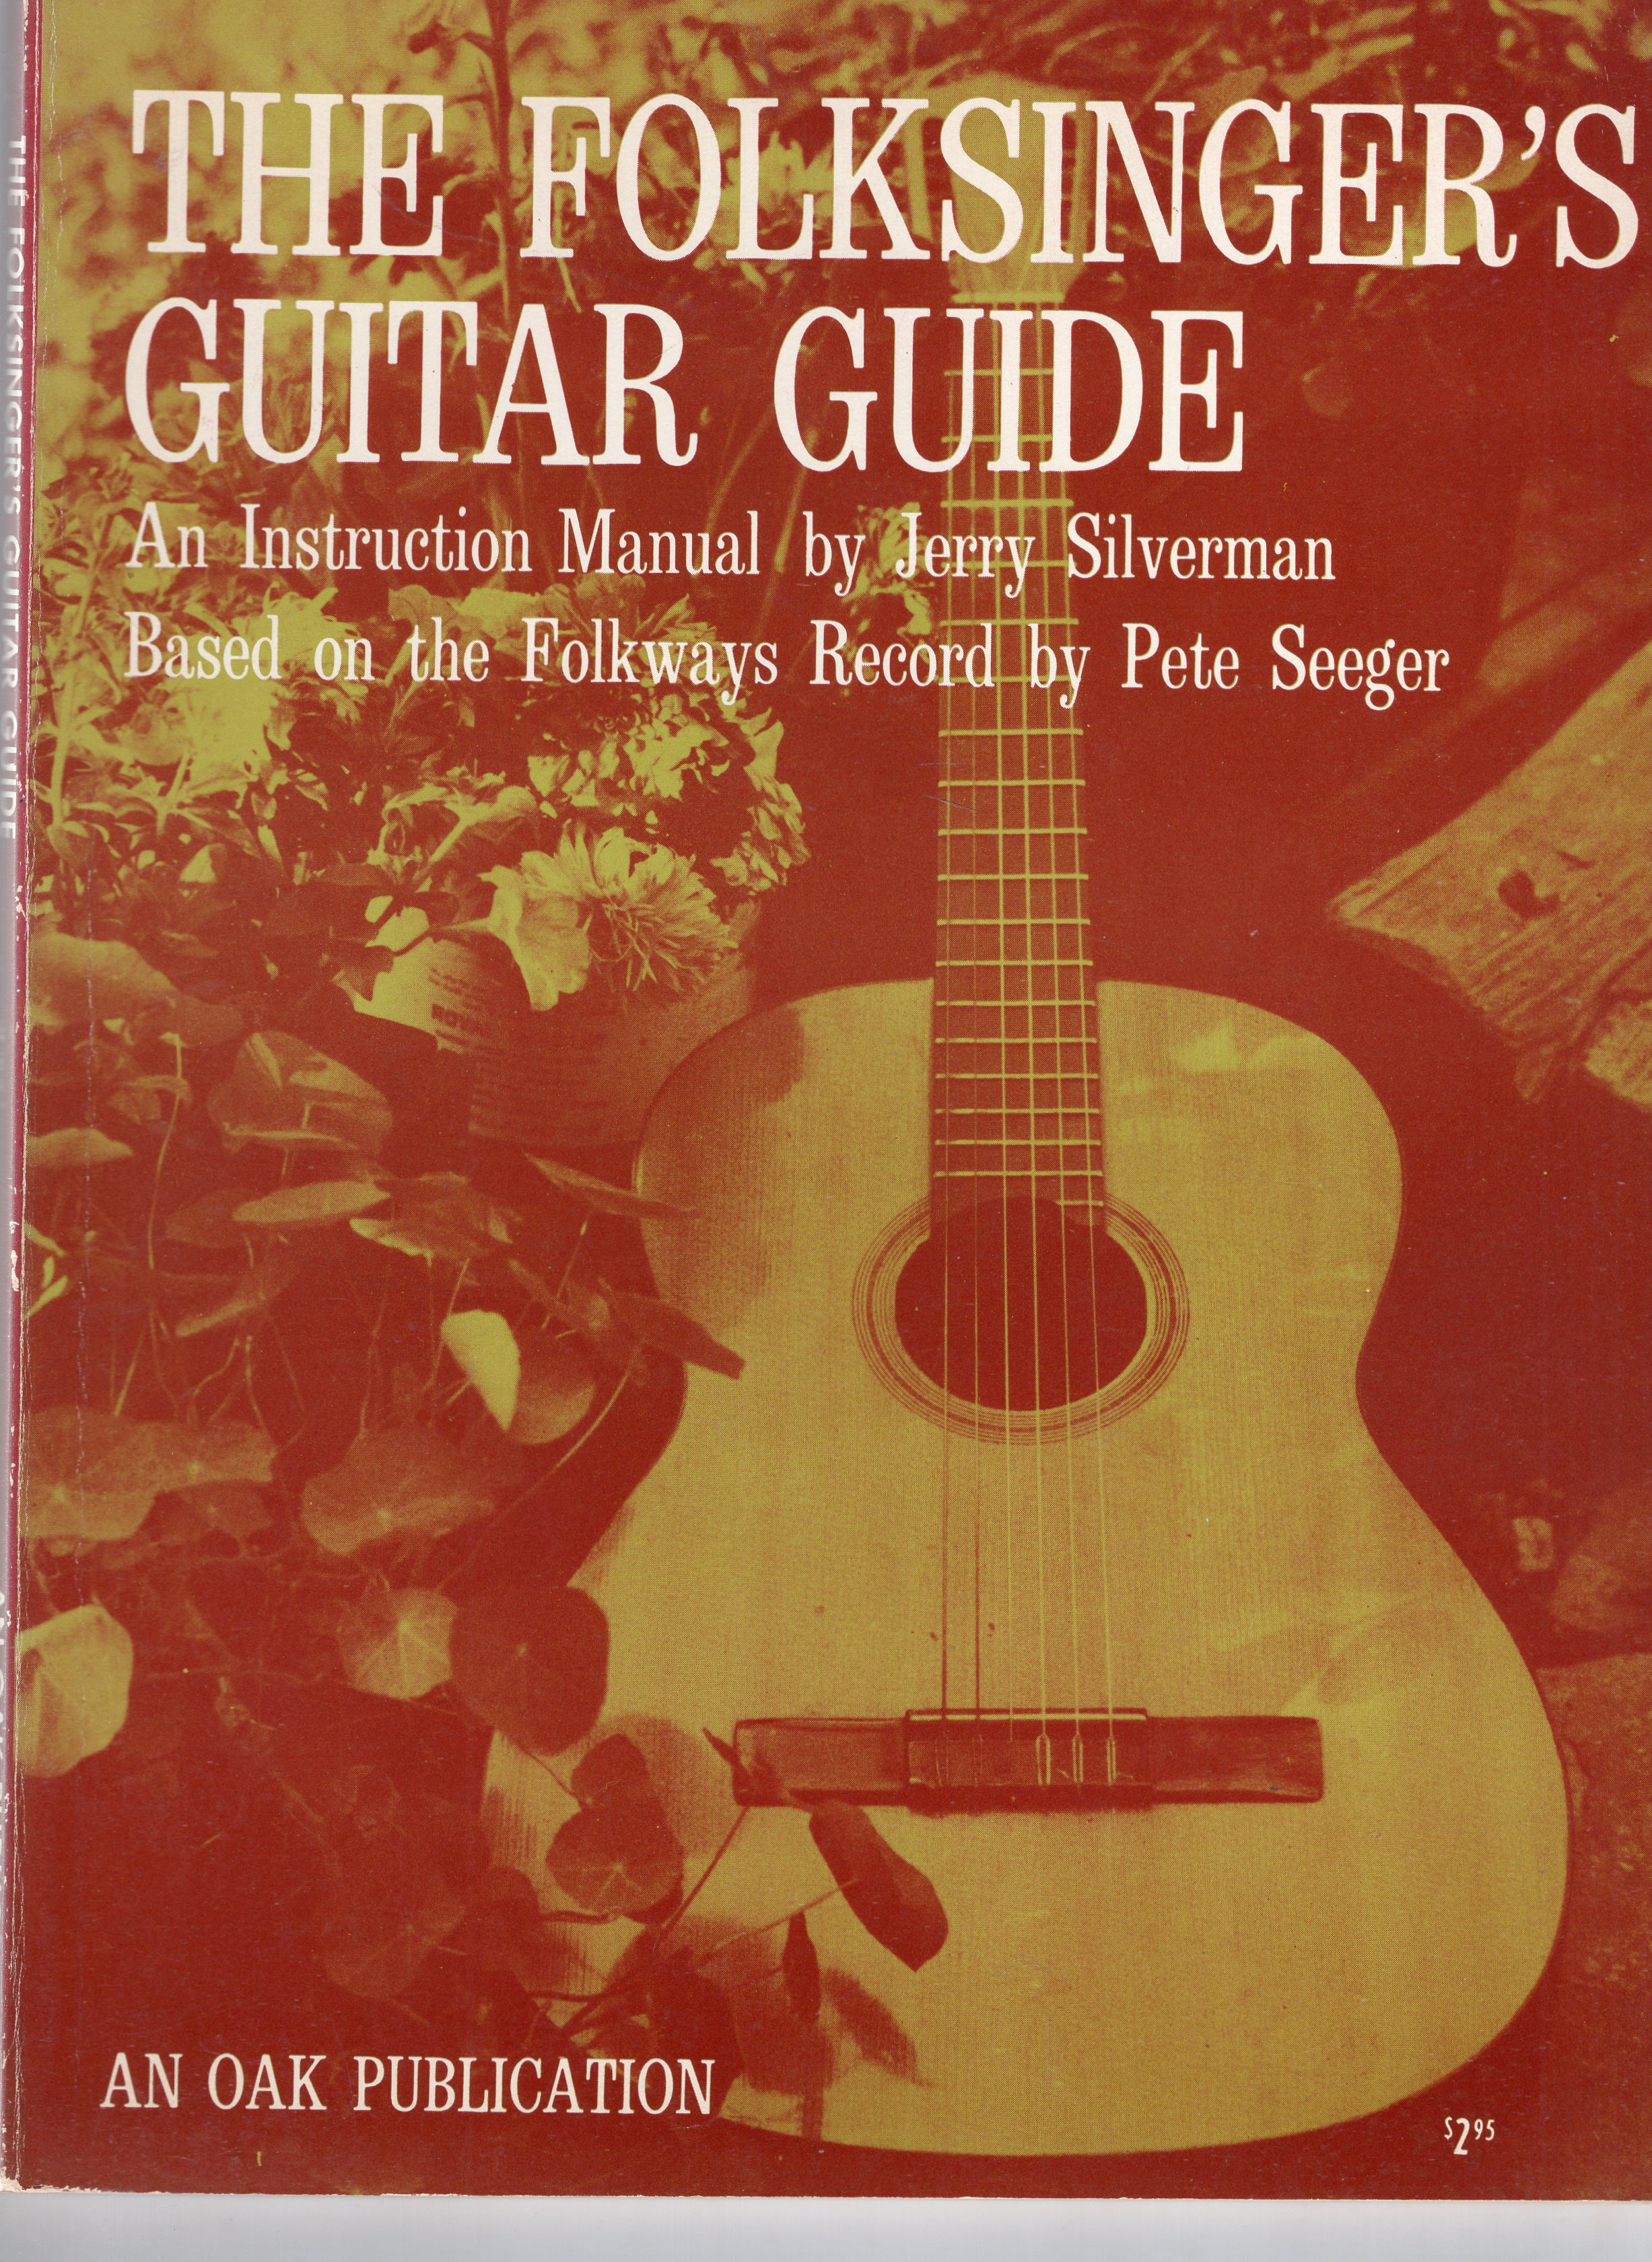 Silverman, Jerry - A Folksinger's Guitar Guide, An Instruction Manual, based on the Folkway Records by Pete Seeger